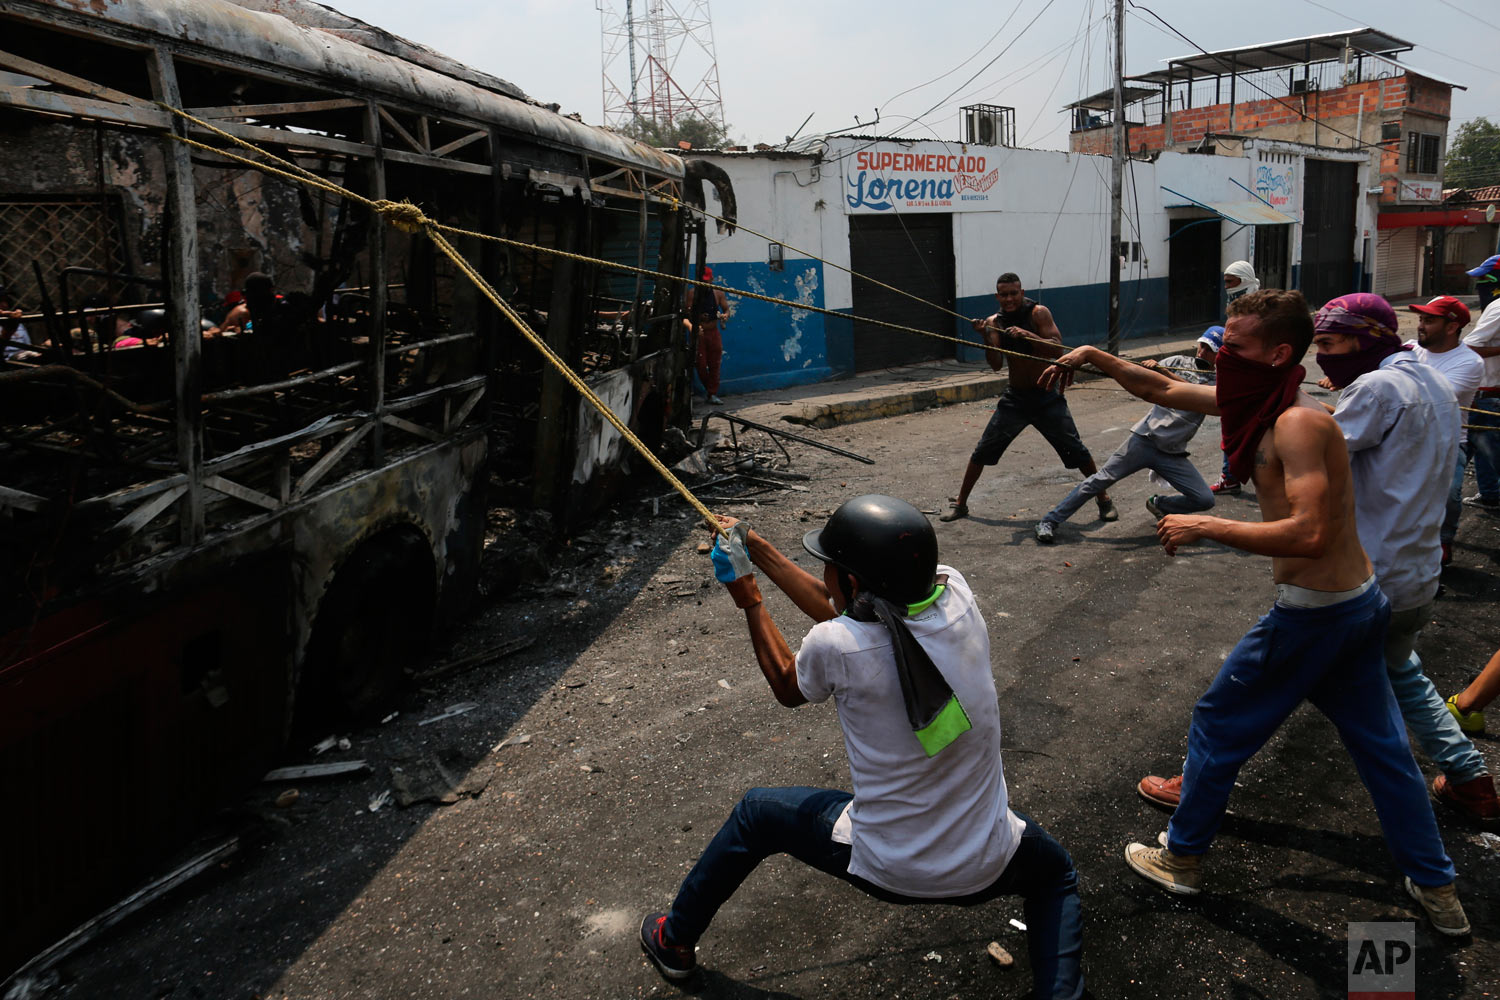 Demonstrators move a torched bus during clashes with the Venezuelan Bolivarian National Guard in Urena, Venezuela, near the border with Colombia, Saturday, Feb. 23, 2019. (AP Photo/Rodrigo Abd)